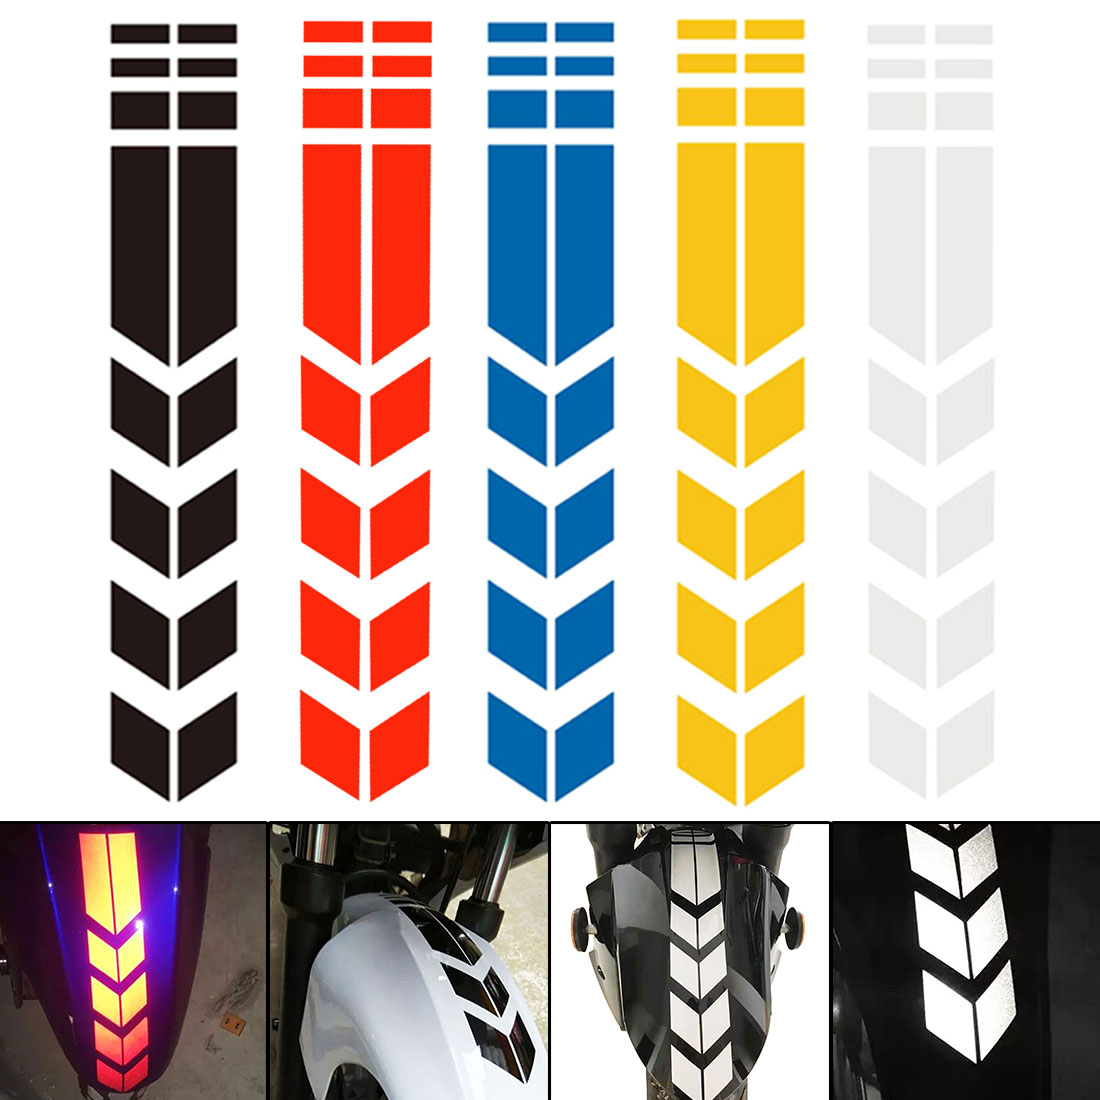 Motorcycle Reflective Sticker  Stickers And Decals Motorcycle Accessories Sticker On Bike Bicycle Fender Decoration